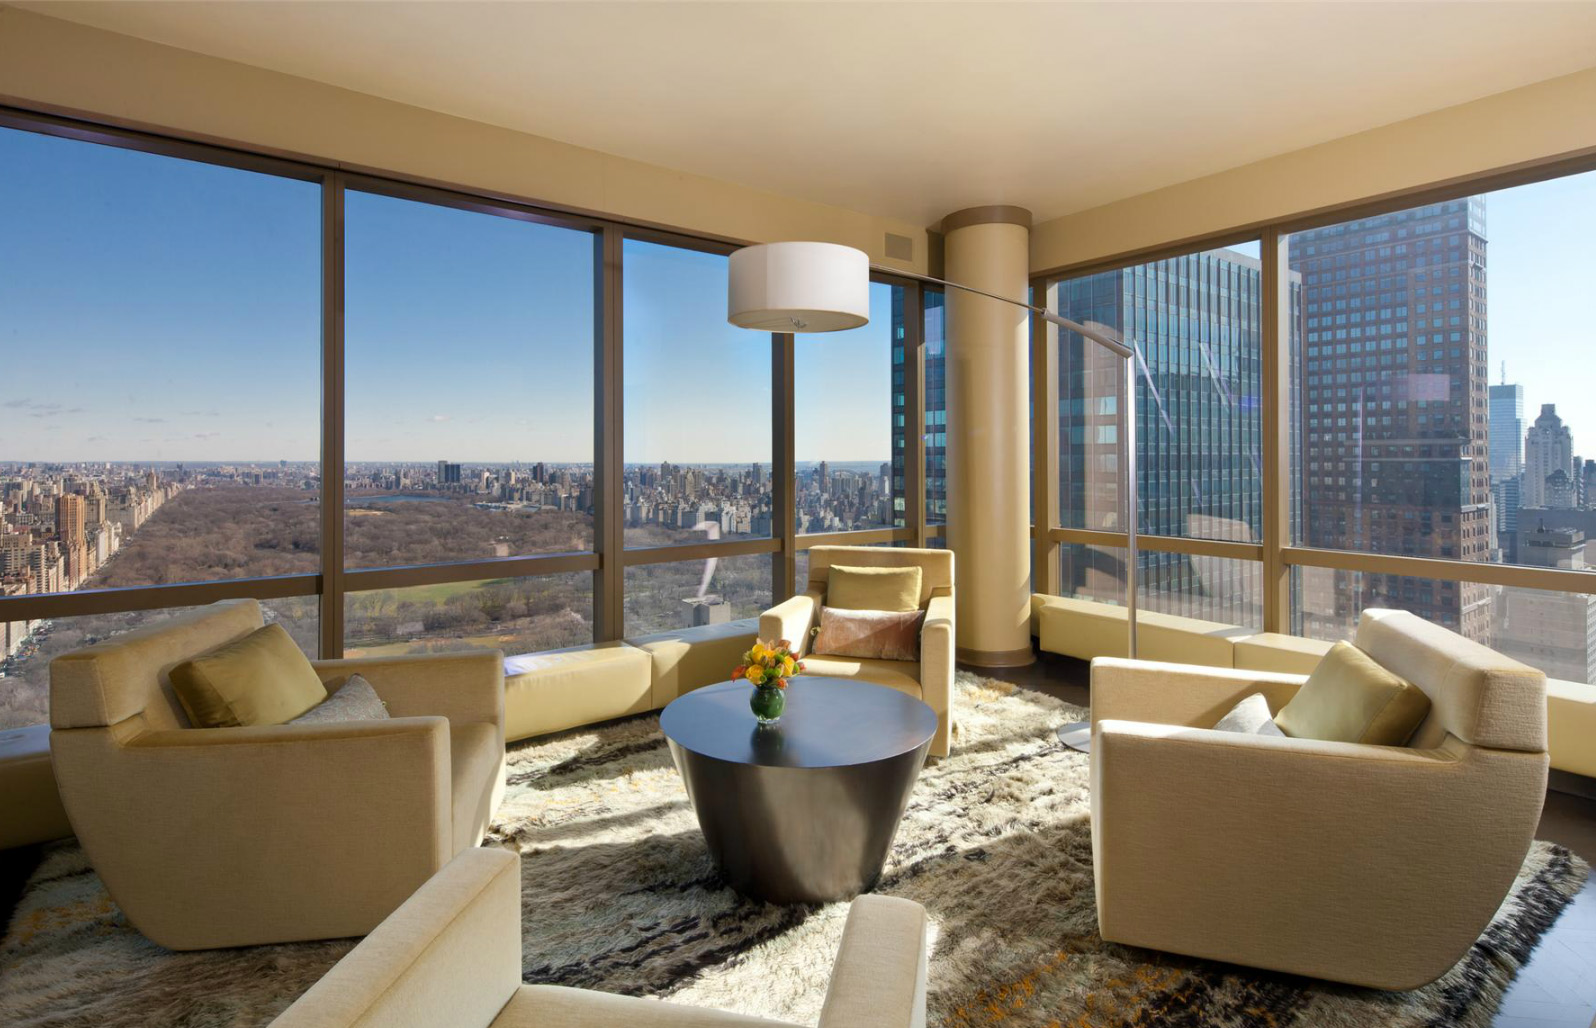 Buy christopher meloni 39 s place and he 39 ll throw in a porsche for Apartment for sale manhattan